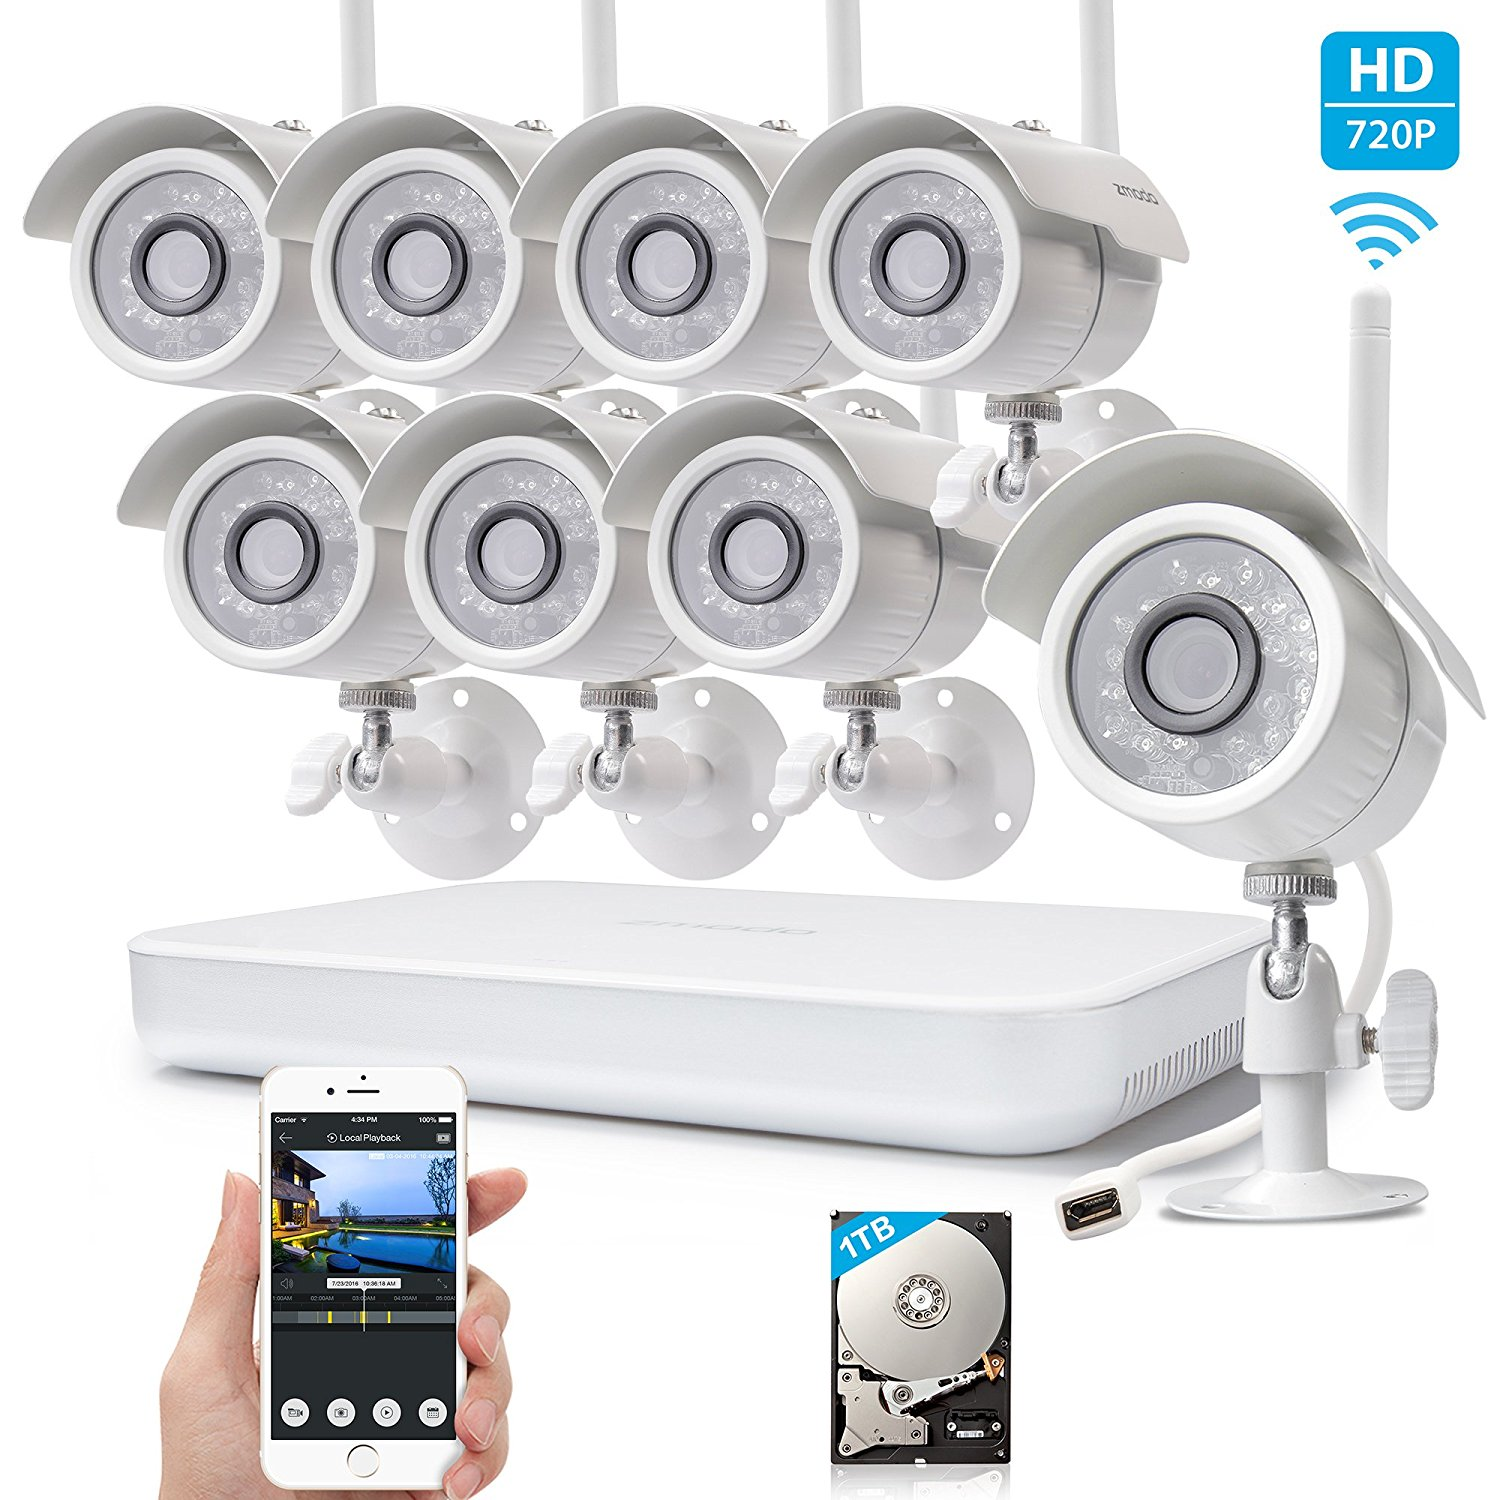 Zmodo 720p HD 1 0 Megapixel Wireless Outdoor Indoor Video Surveillance IP Network Security Camera System